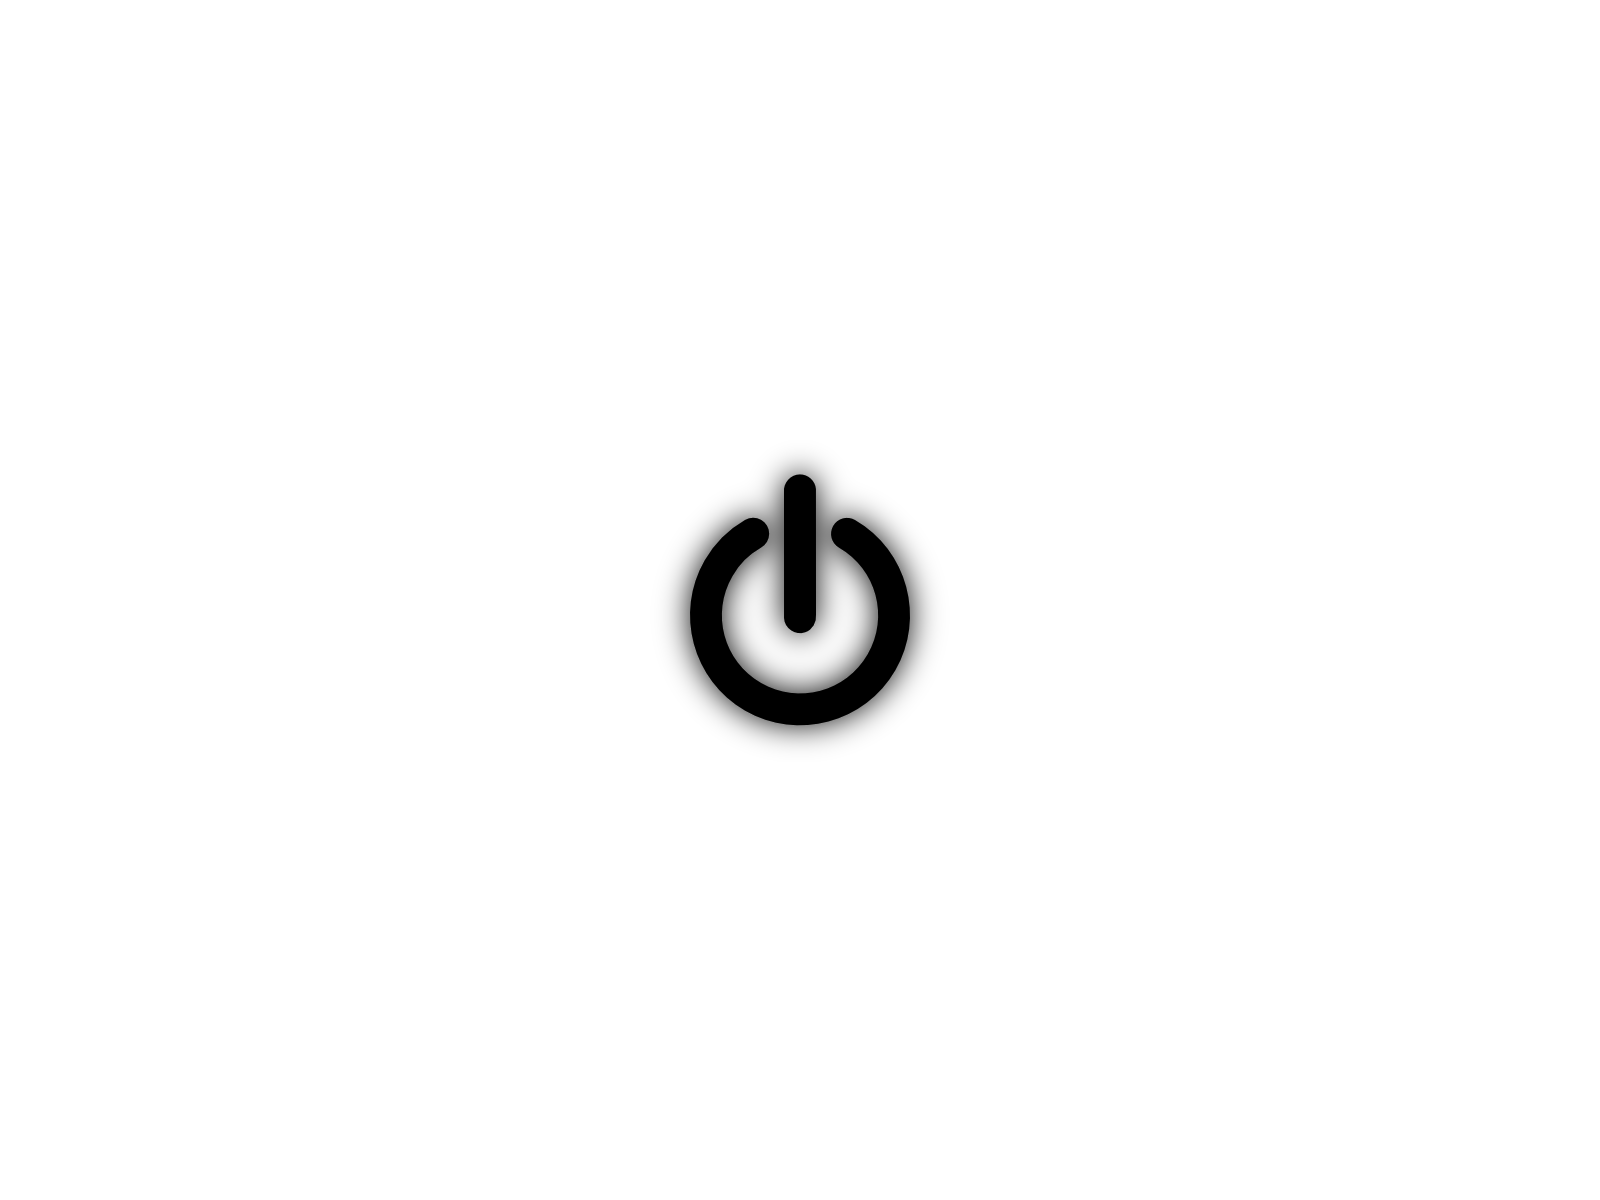 minimal power button logos hd wallpapers desktop wallpapers power button loose moto e4 power button logo for which software